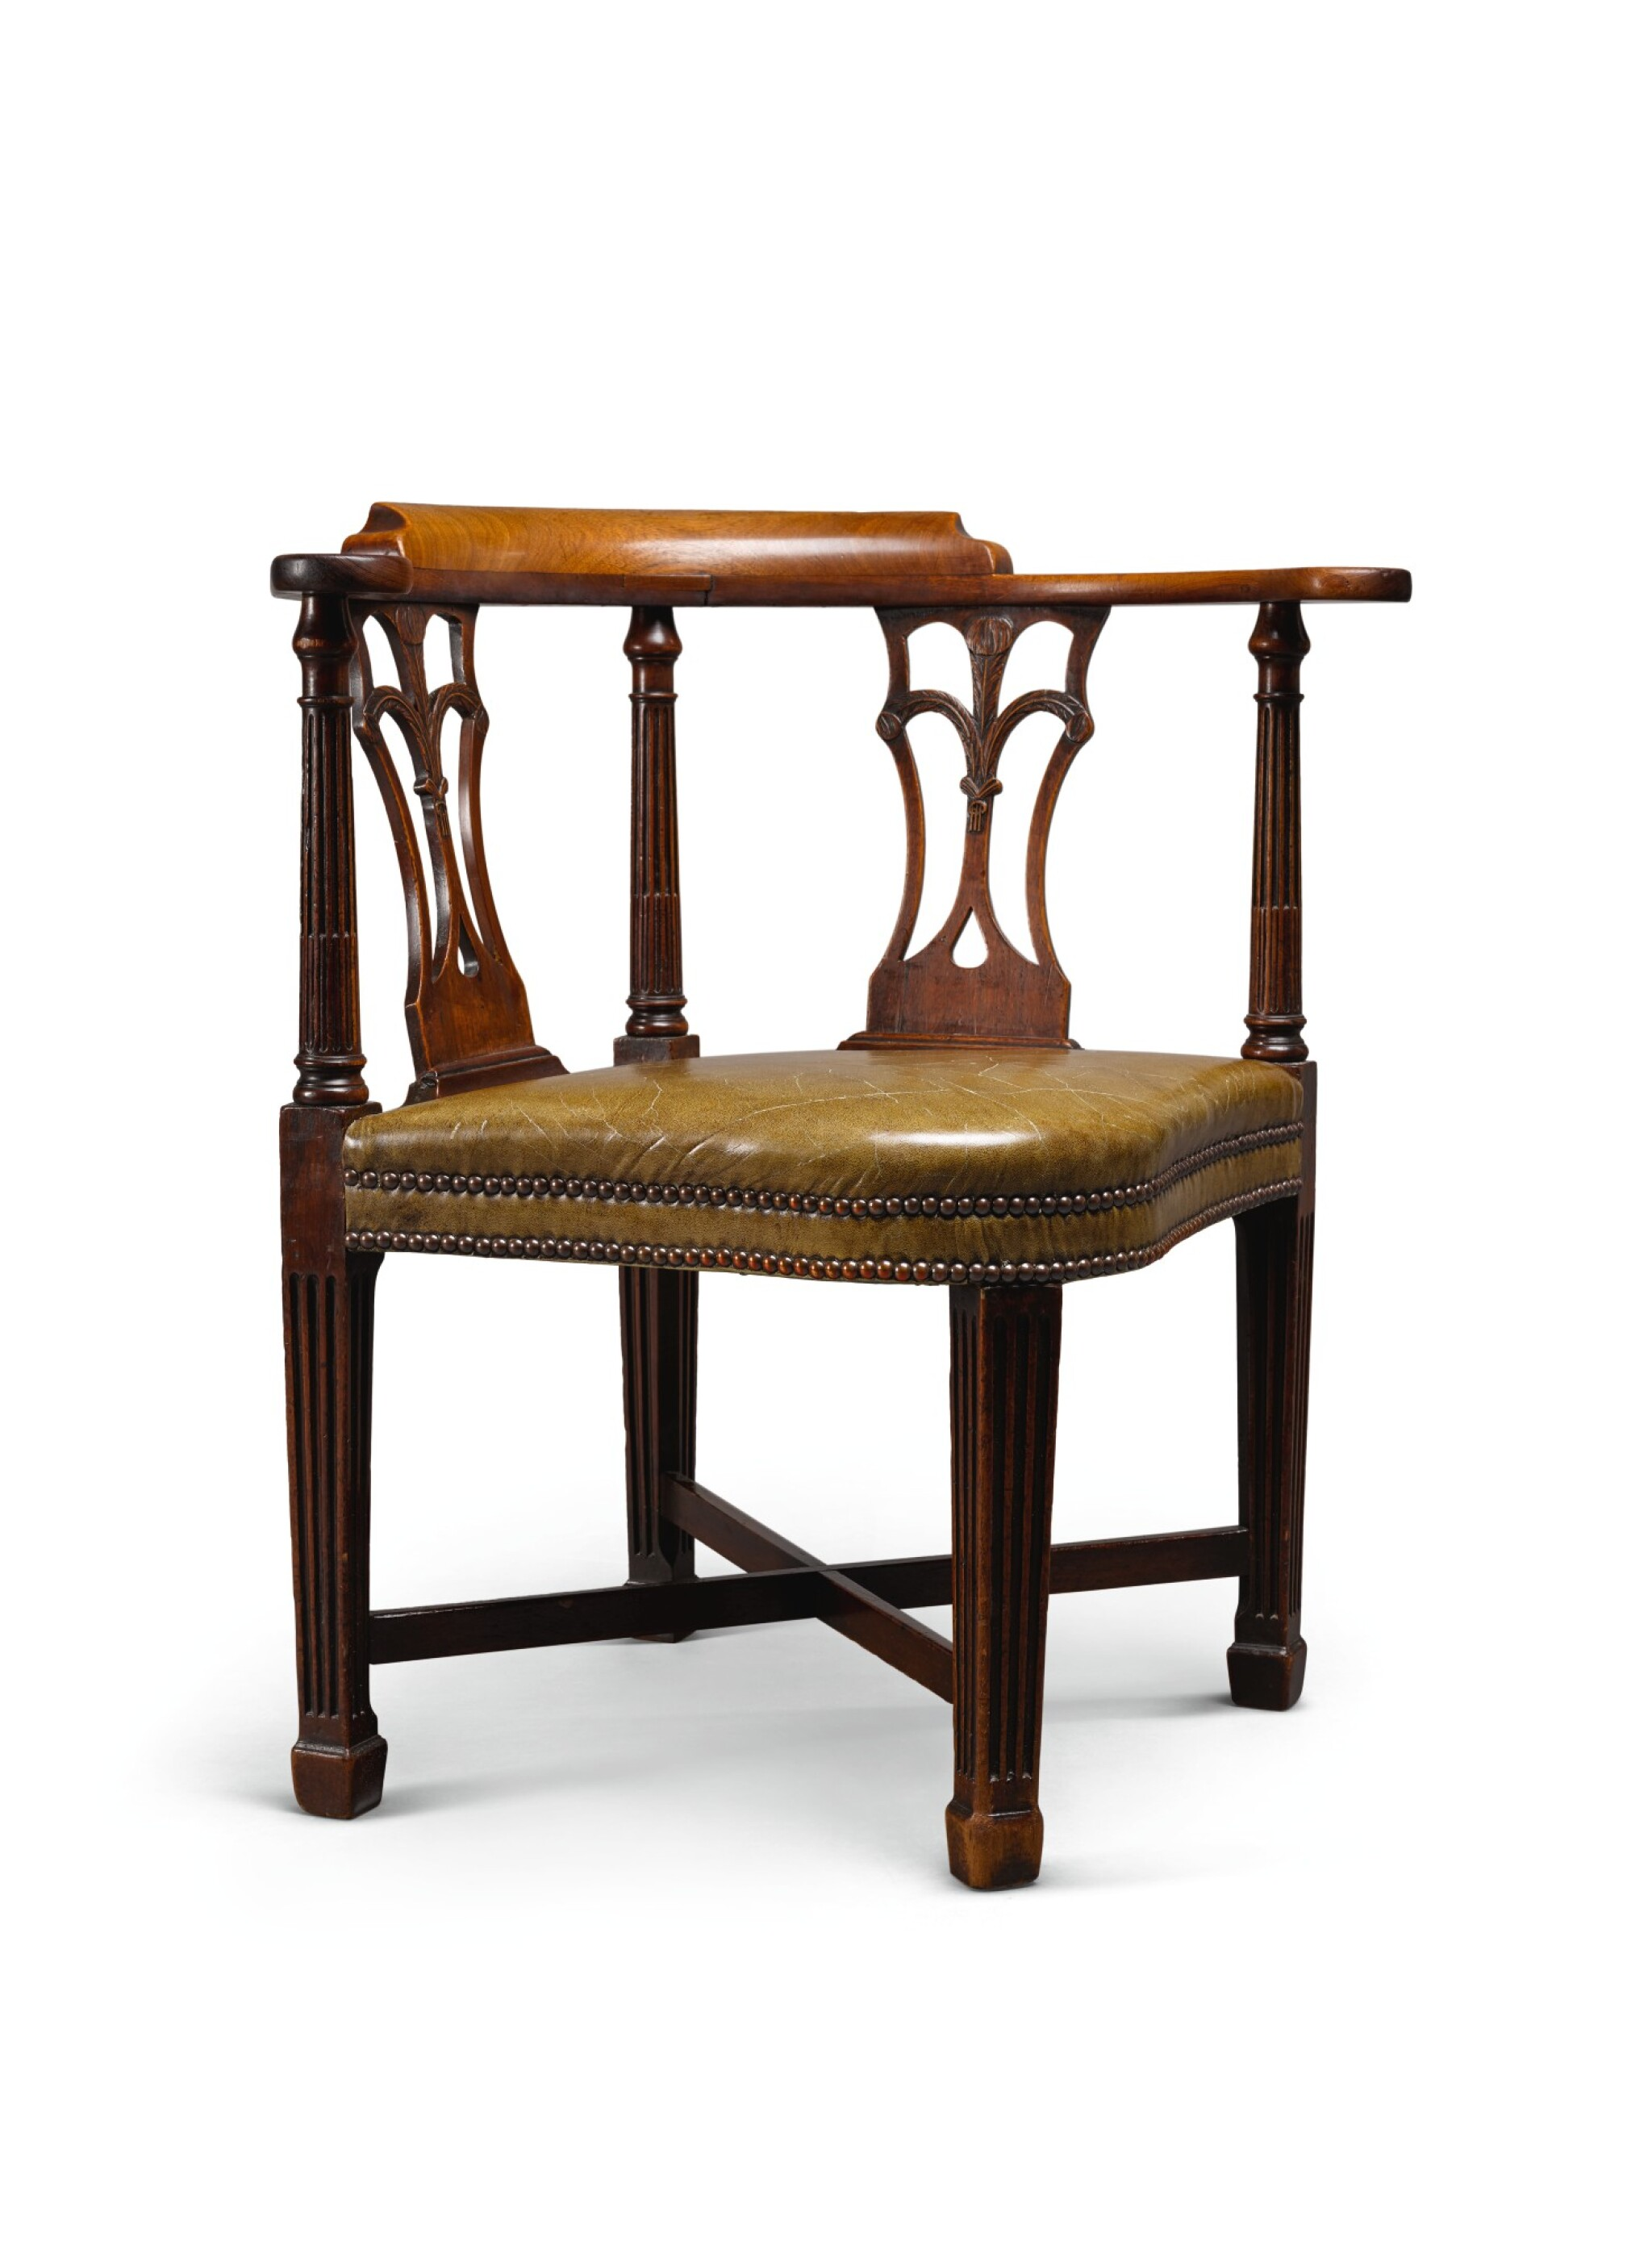 View full screen - View 1 of Lot 49. A GEORGE III MAHOGANY CORNER ARMCHAIR, LATE 18TH CENTURY.